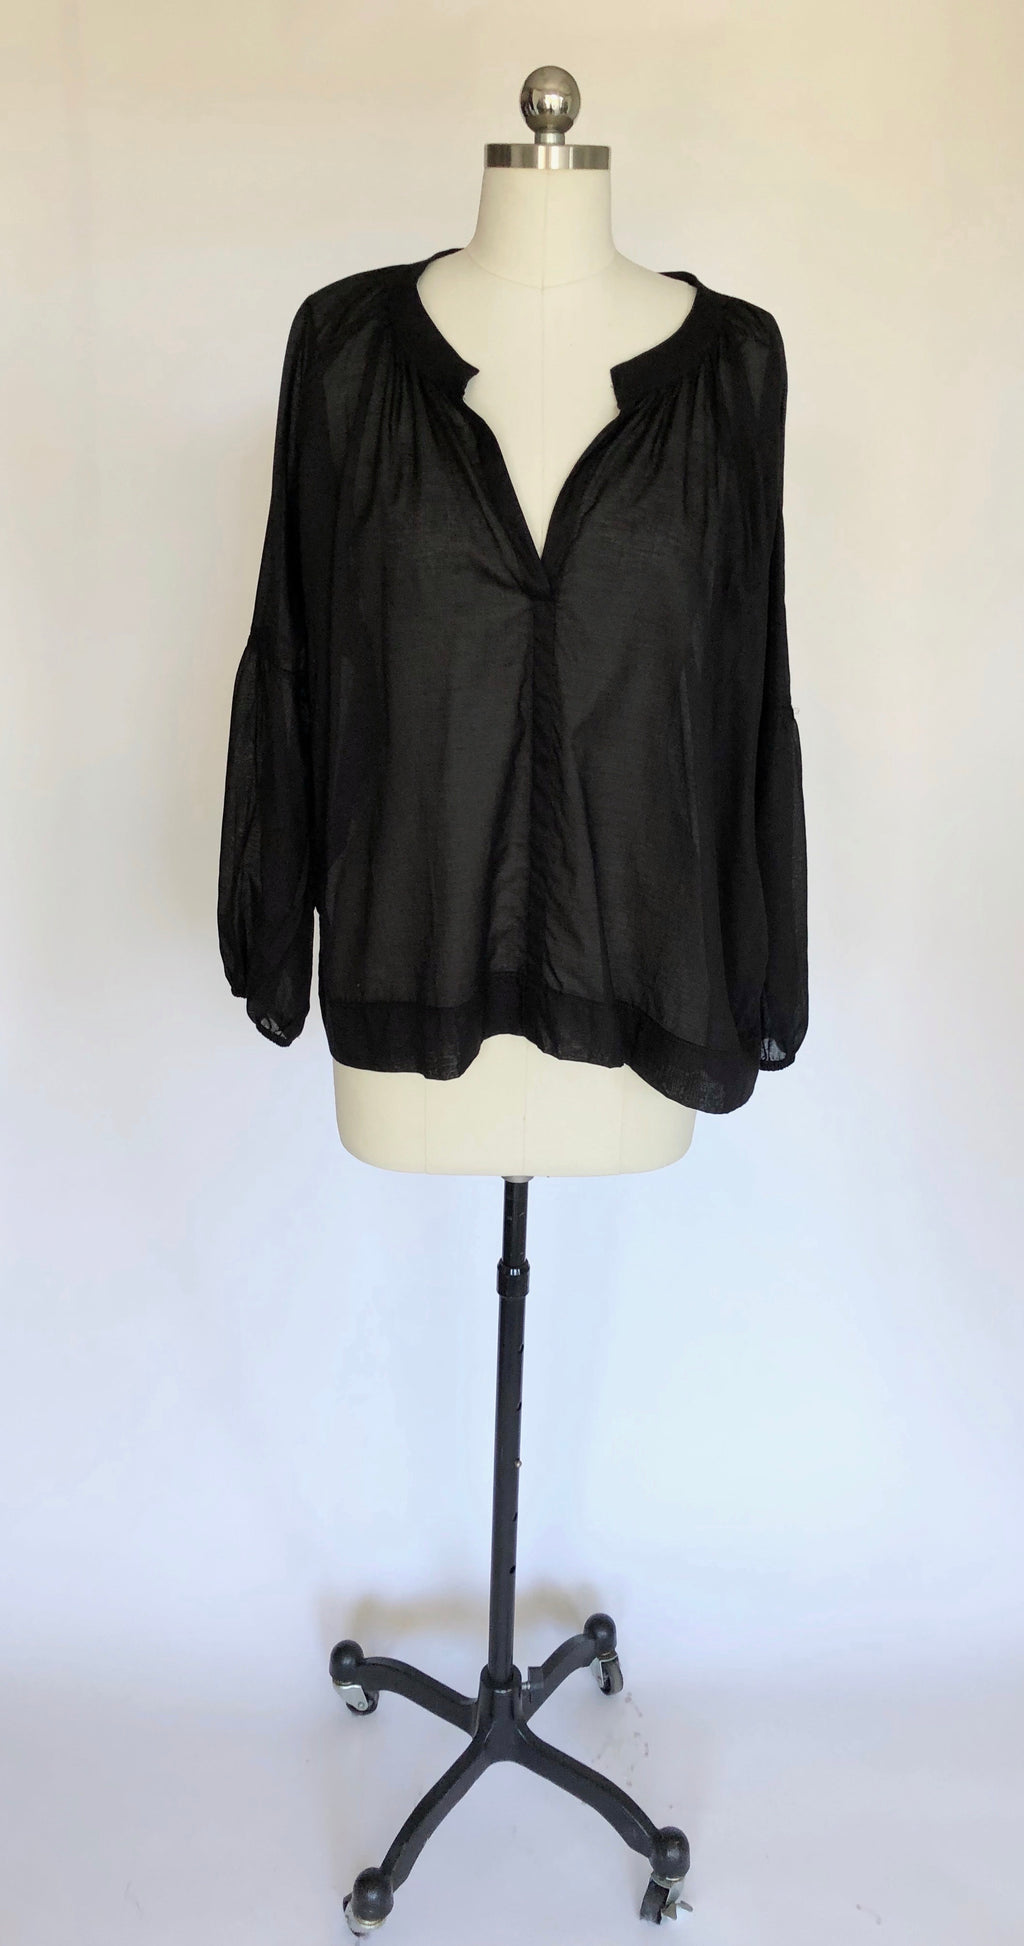 Black Cotton Organdy Top